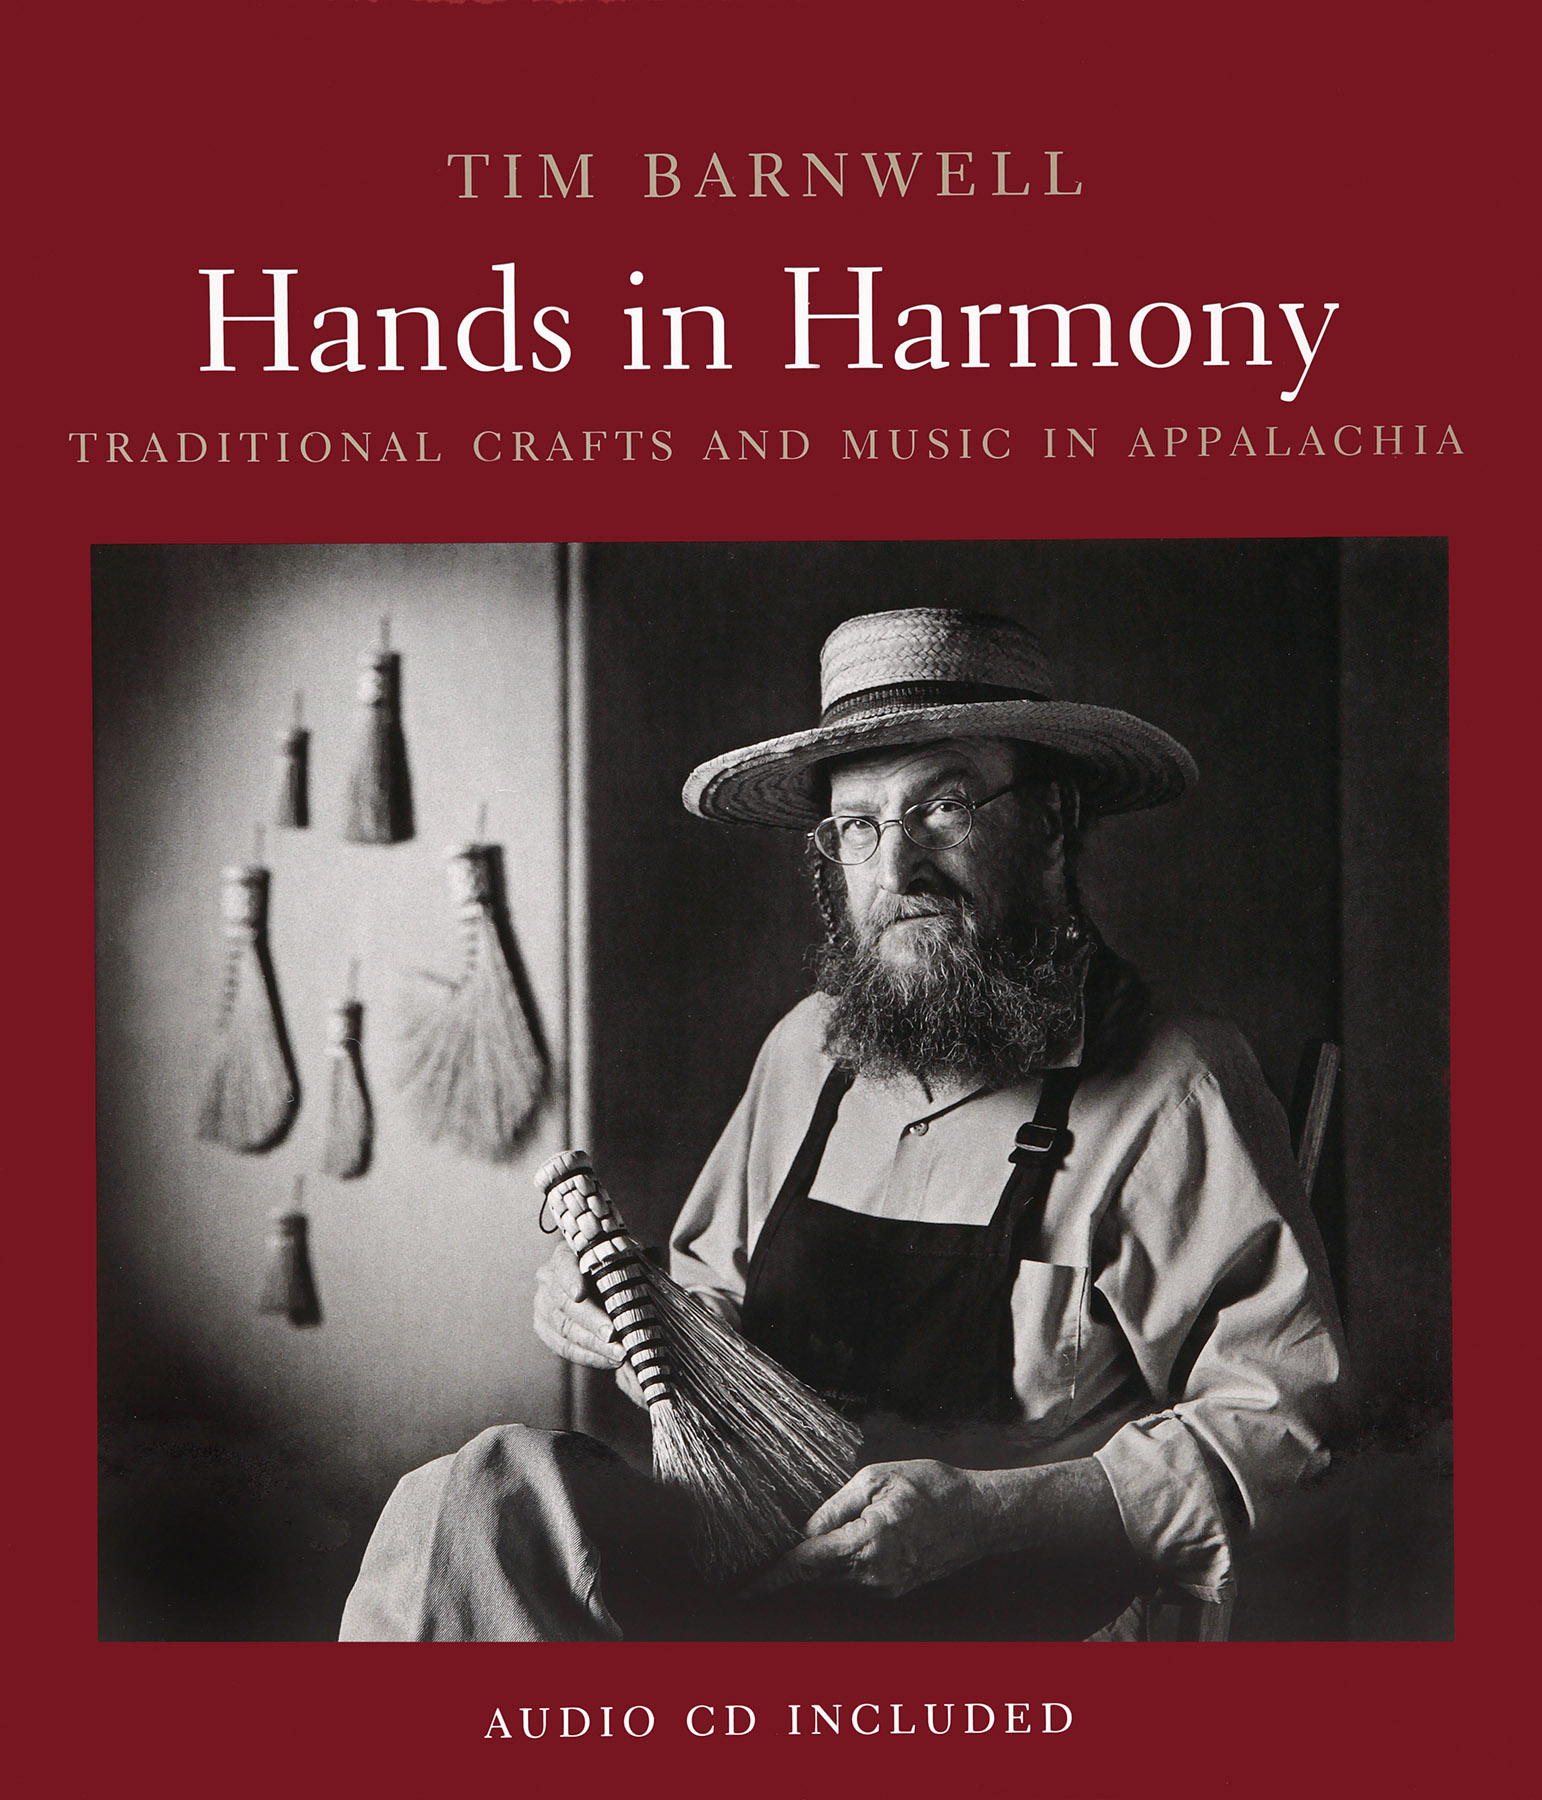 Copy of Hands in Harmony Traditional Music and Handcrafts in Appalachia